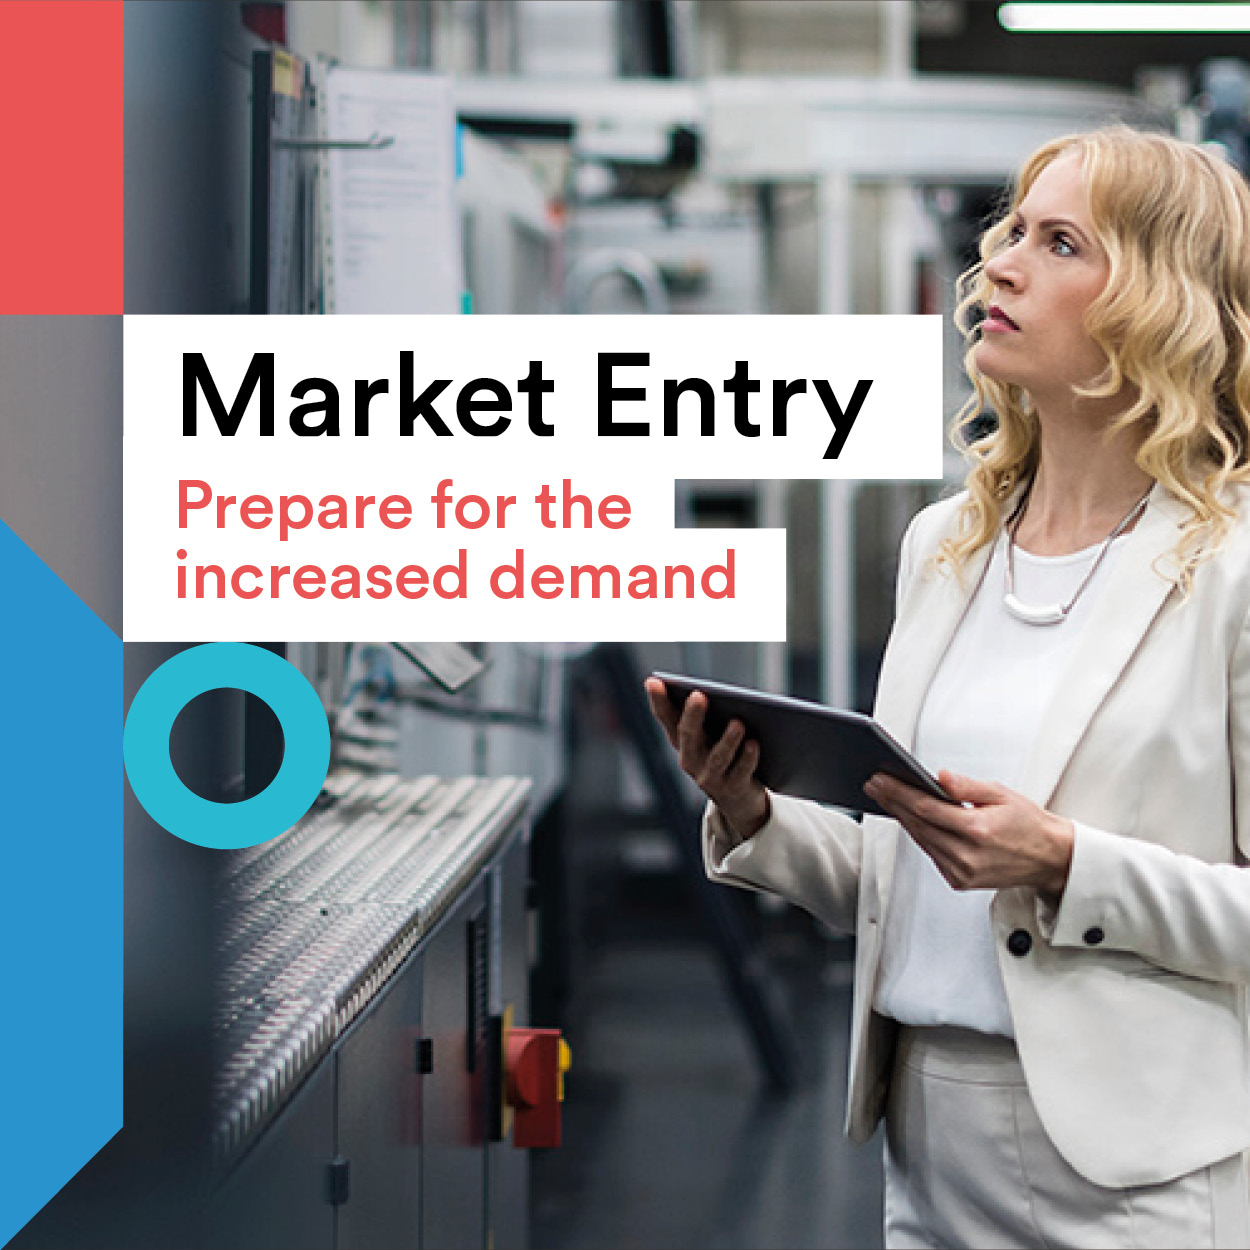 Market Entry title and businesswoman image